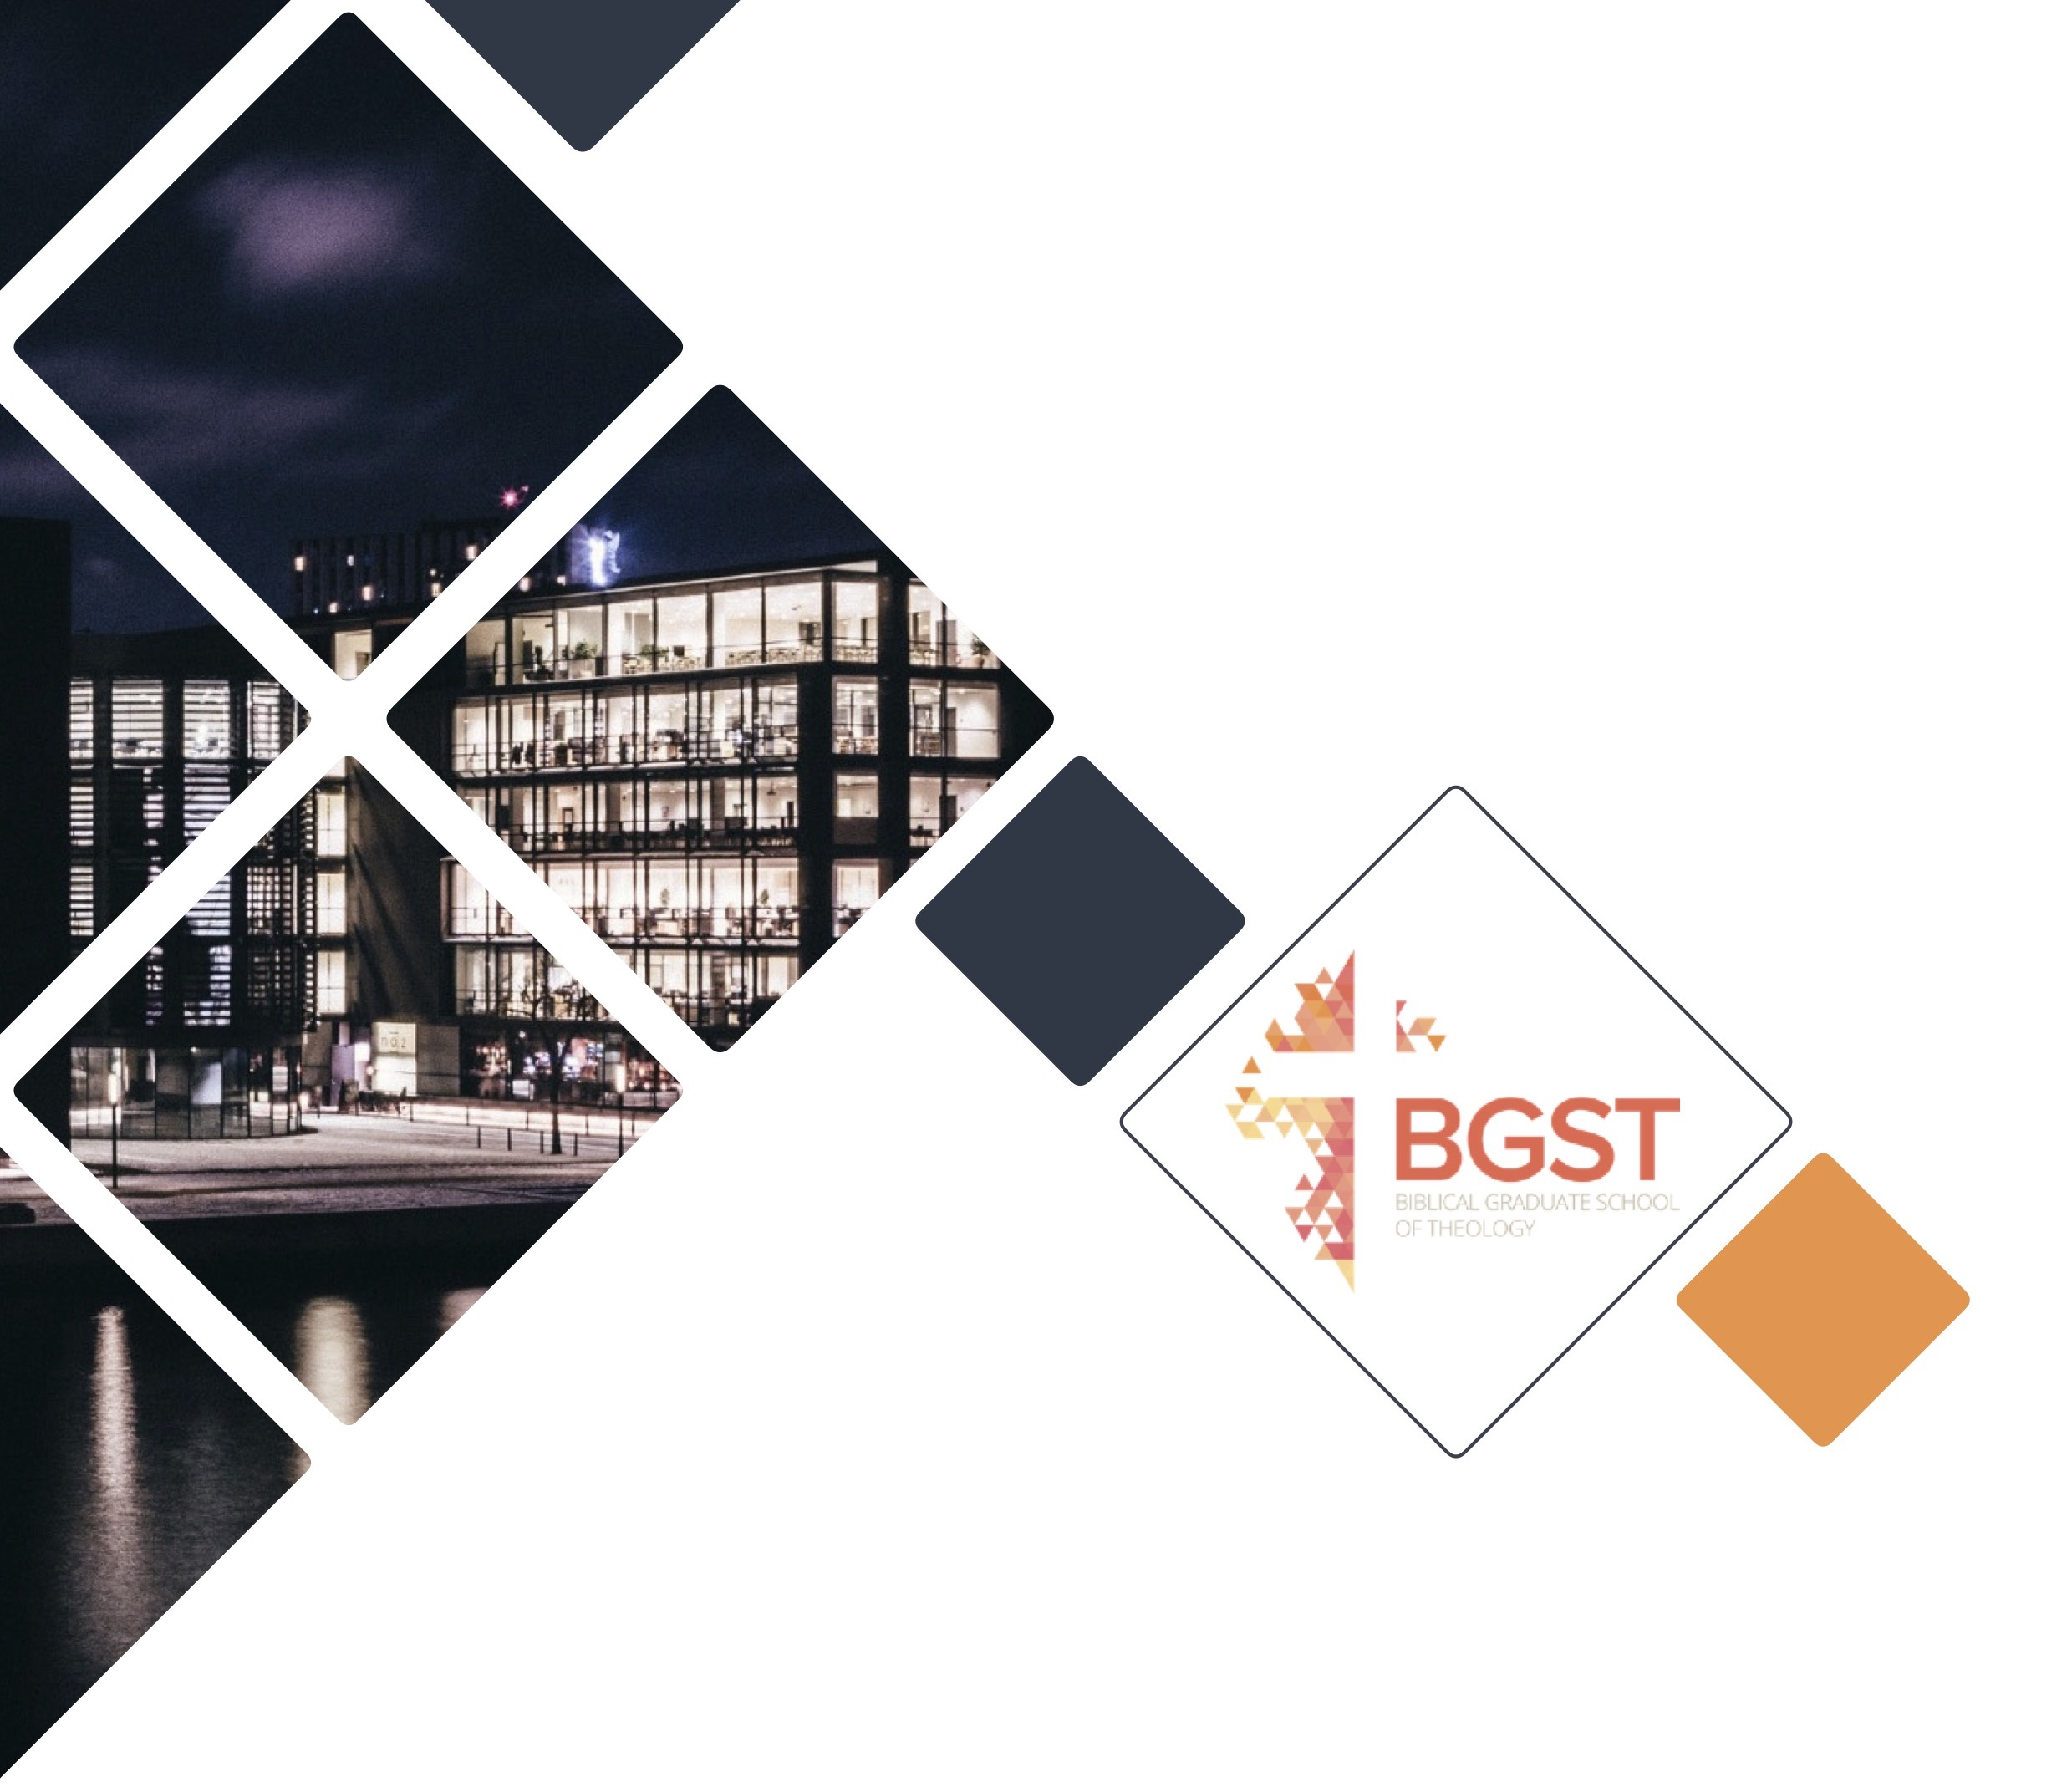 BGST Experience – BGST Resources